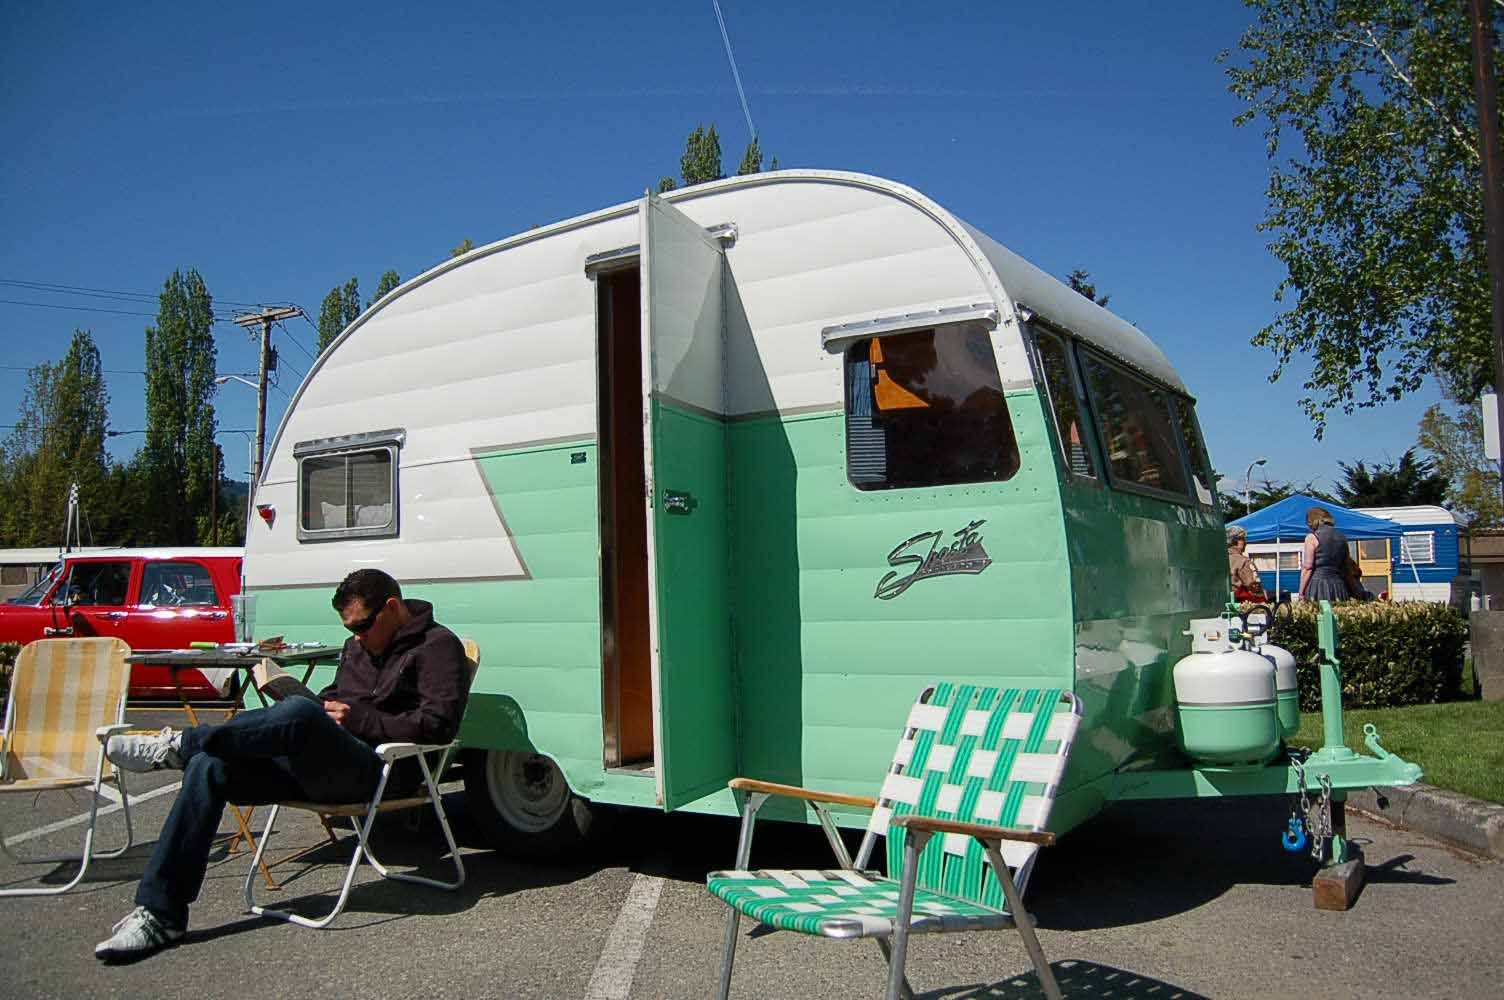 1956 Shasta Trailer In Mint Green And White With Silver Stripe